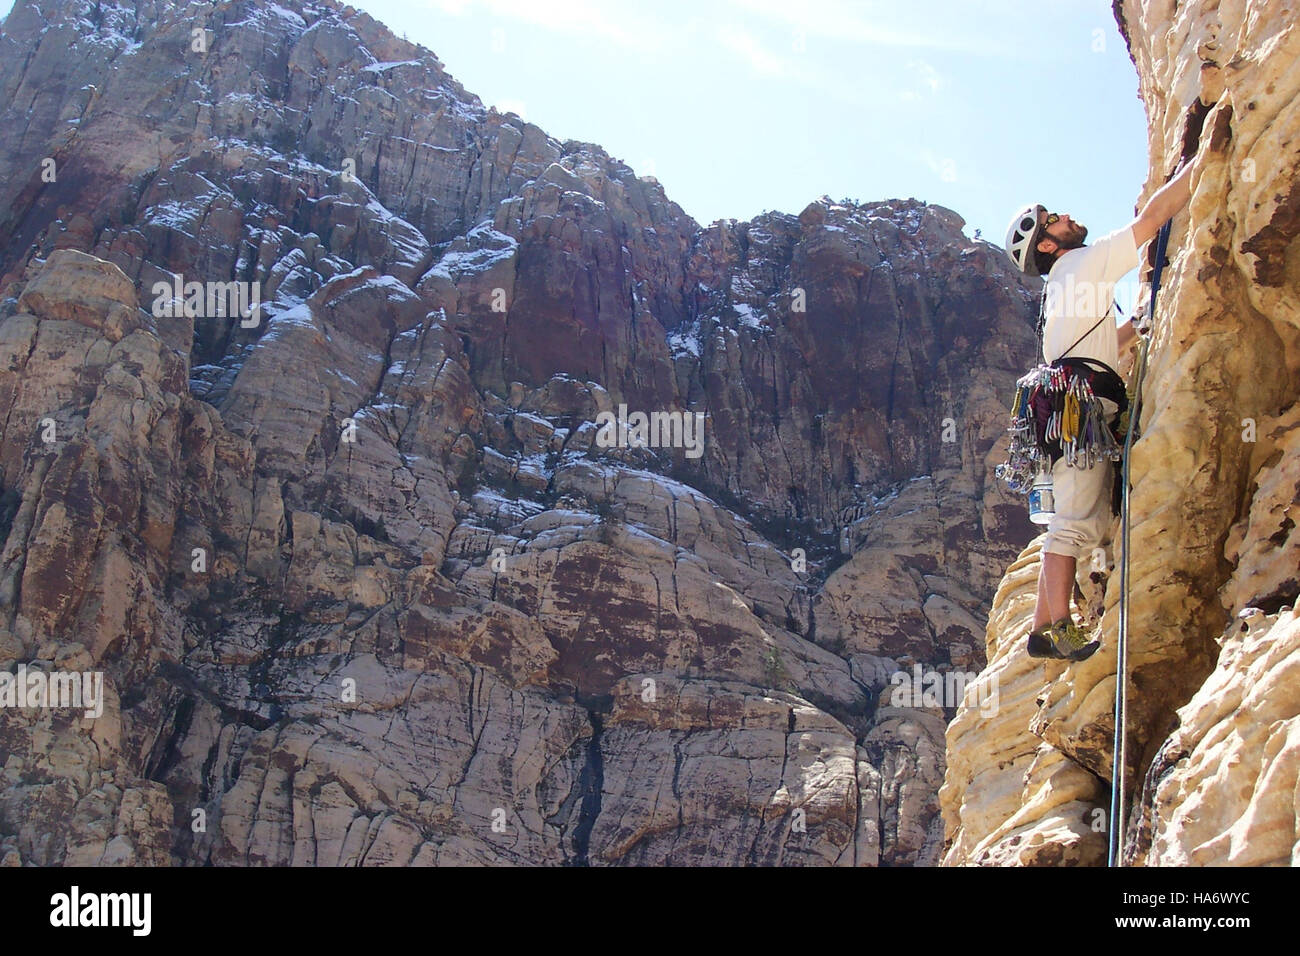 Blmnevada 25585058331 Red Rock Klettern Stockbild